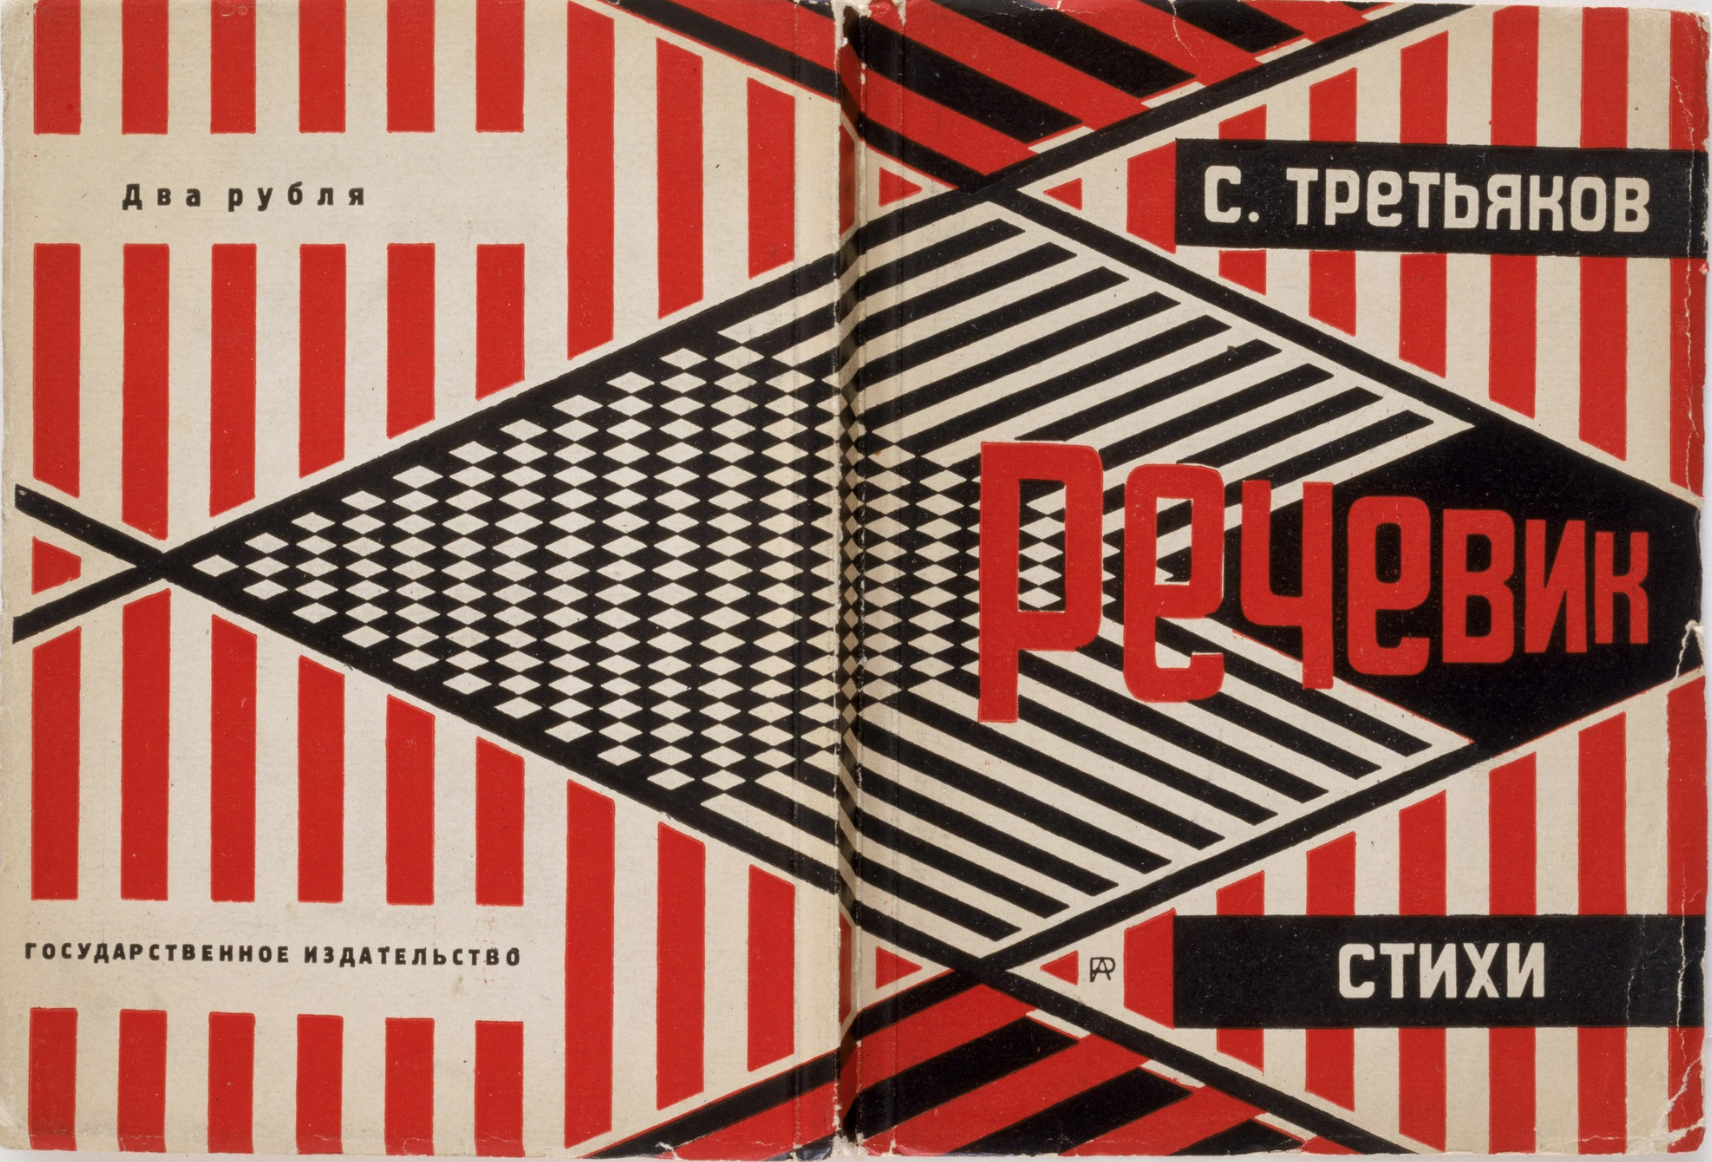 Rechevik. Stikhi  (1929) by Aleksandr Rodchenko. Source:  https://www.moma.org/collection/works/7577?artist_id=4975&locale=en&page=2&sov_referrer=artist